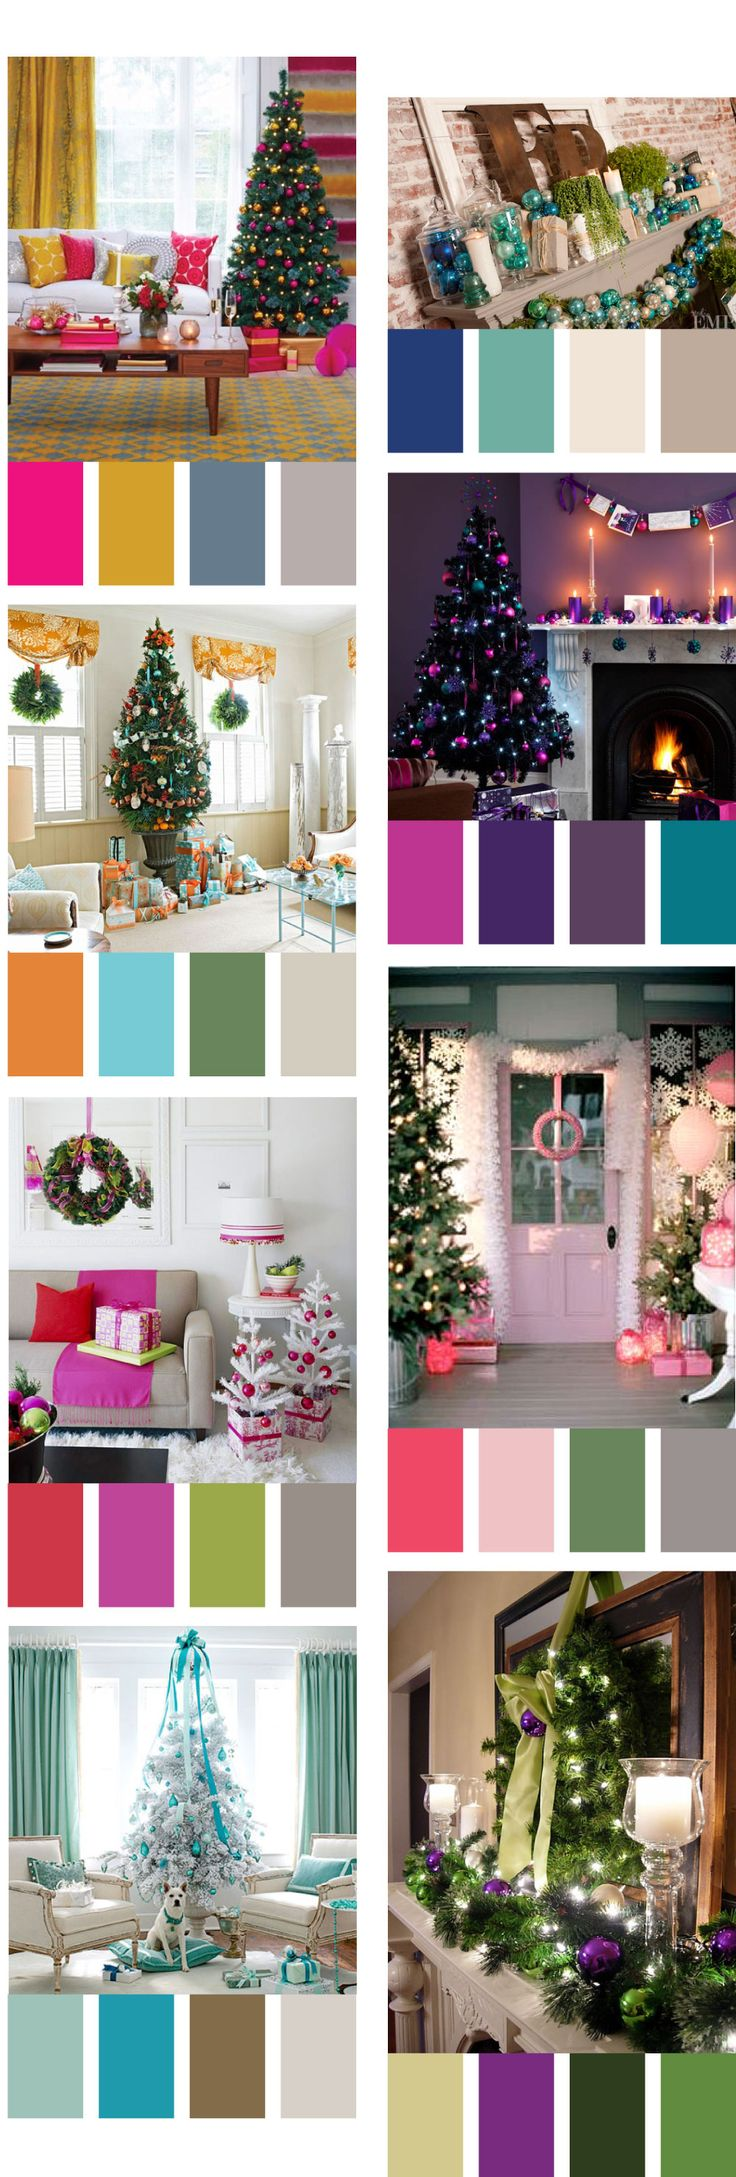 Christmas Color Schemes.Remodelaholic Decorating With Non Traditional Christmas Colors